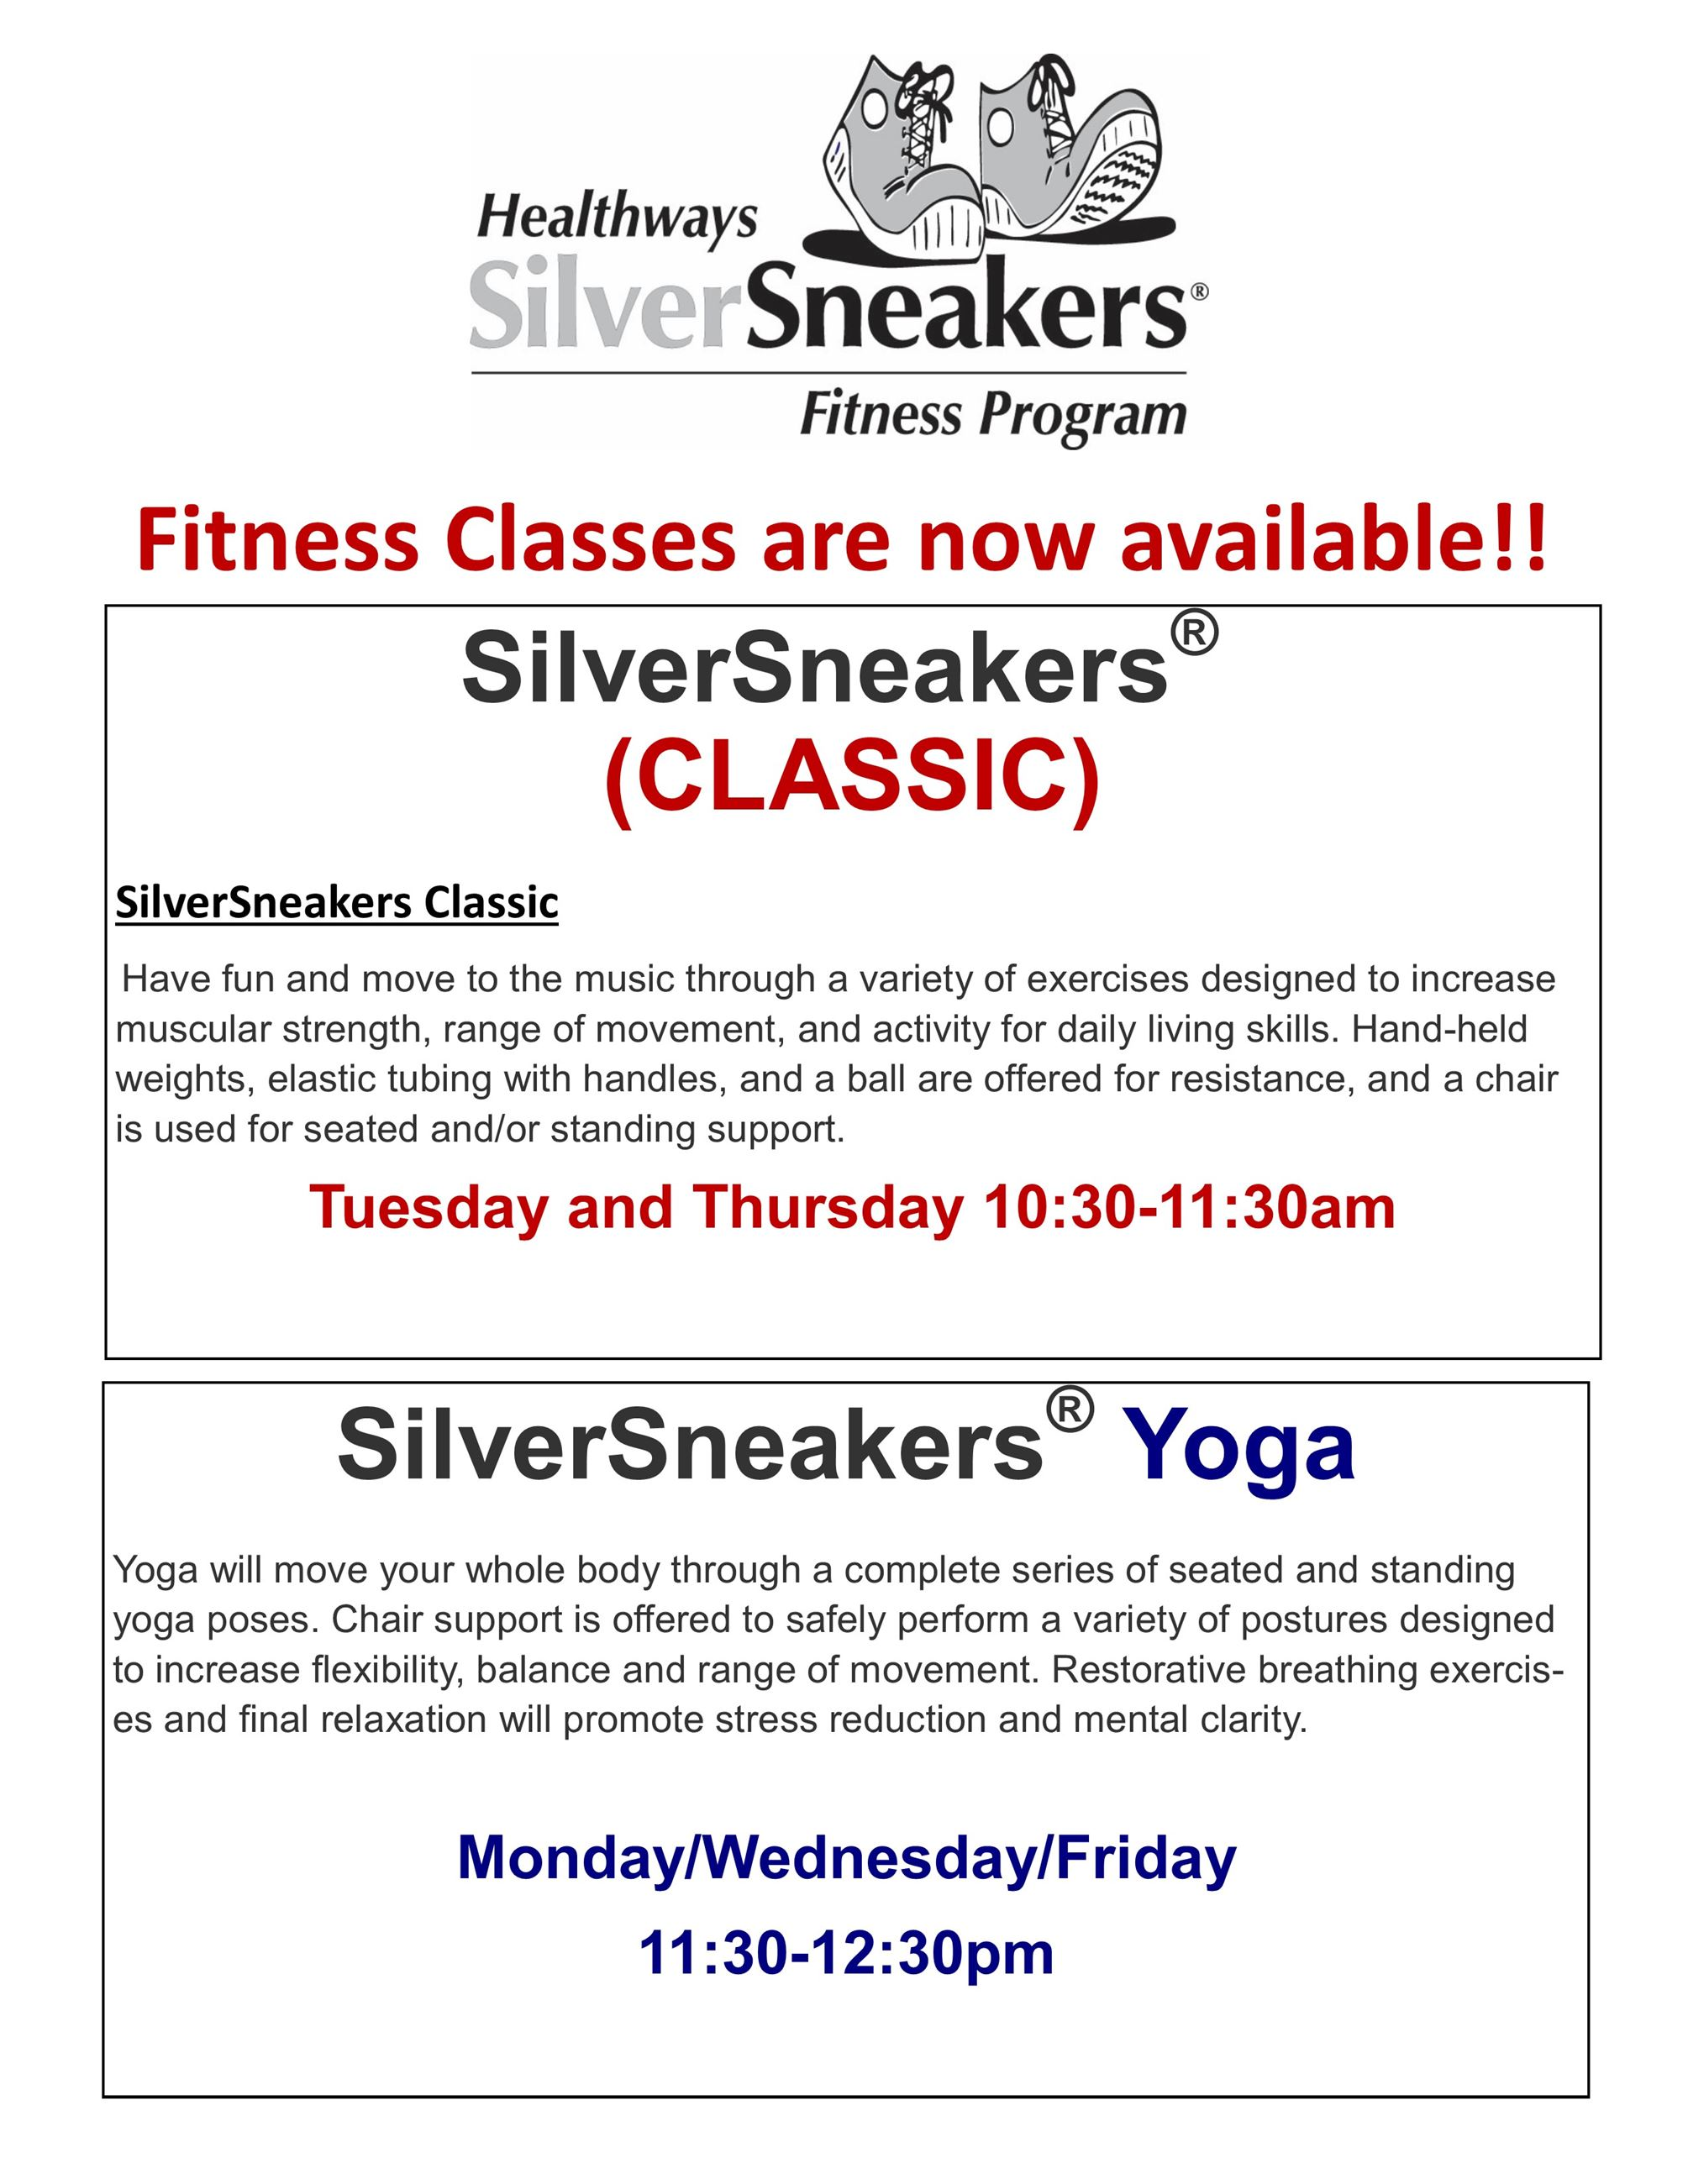 Senior Class 1 and Silver Sneakers  schedule Dec 2016 descriptions